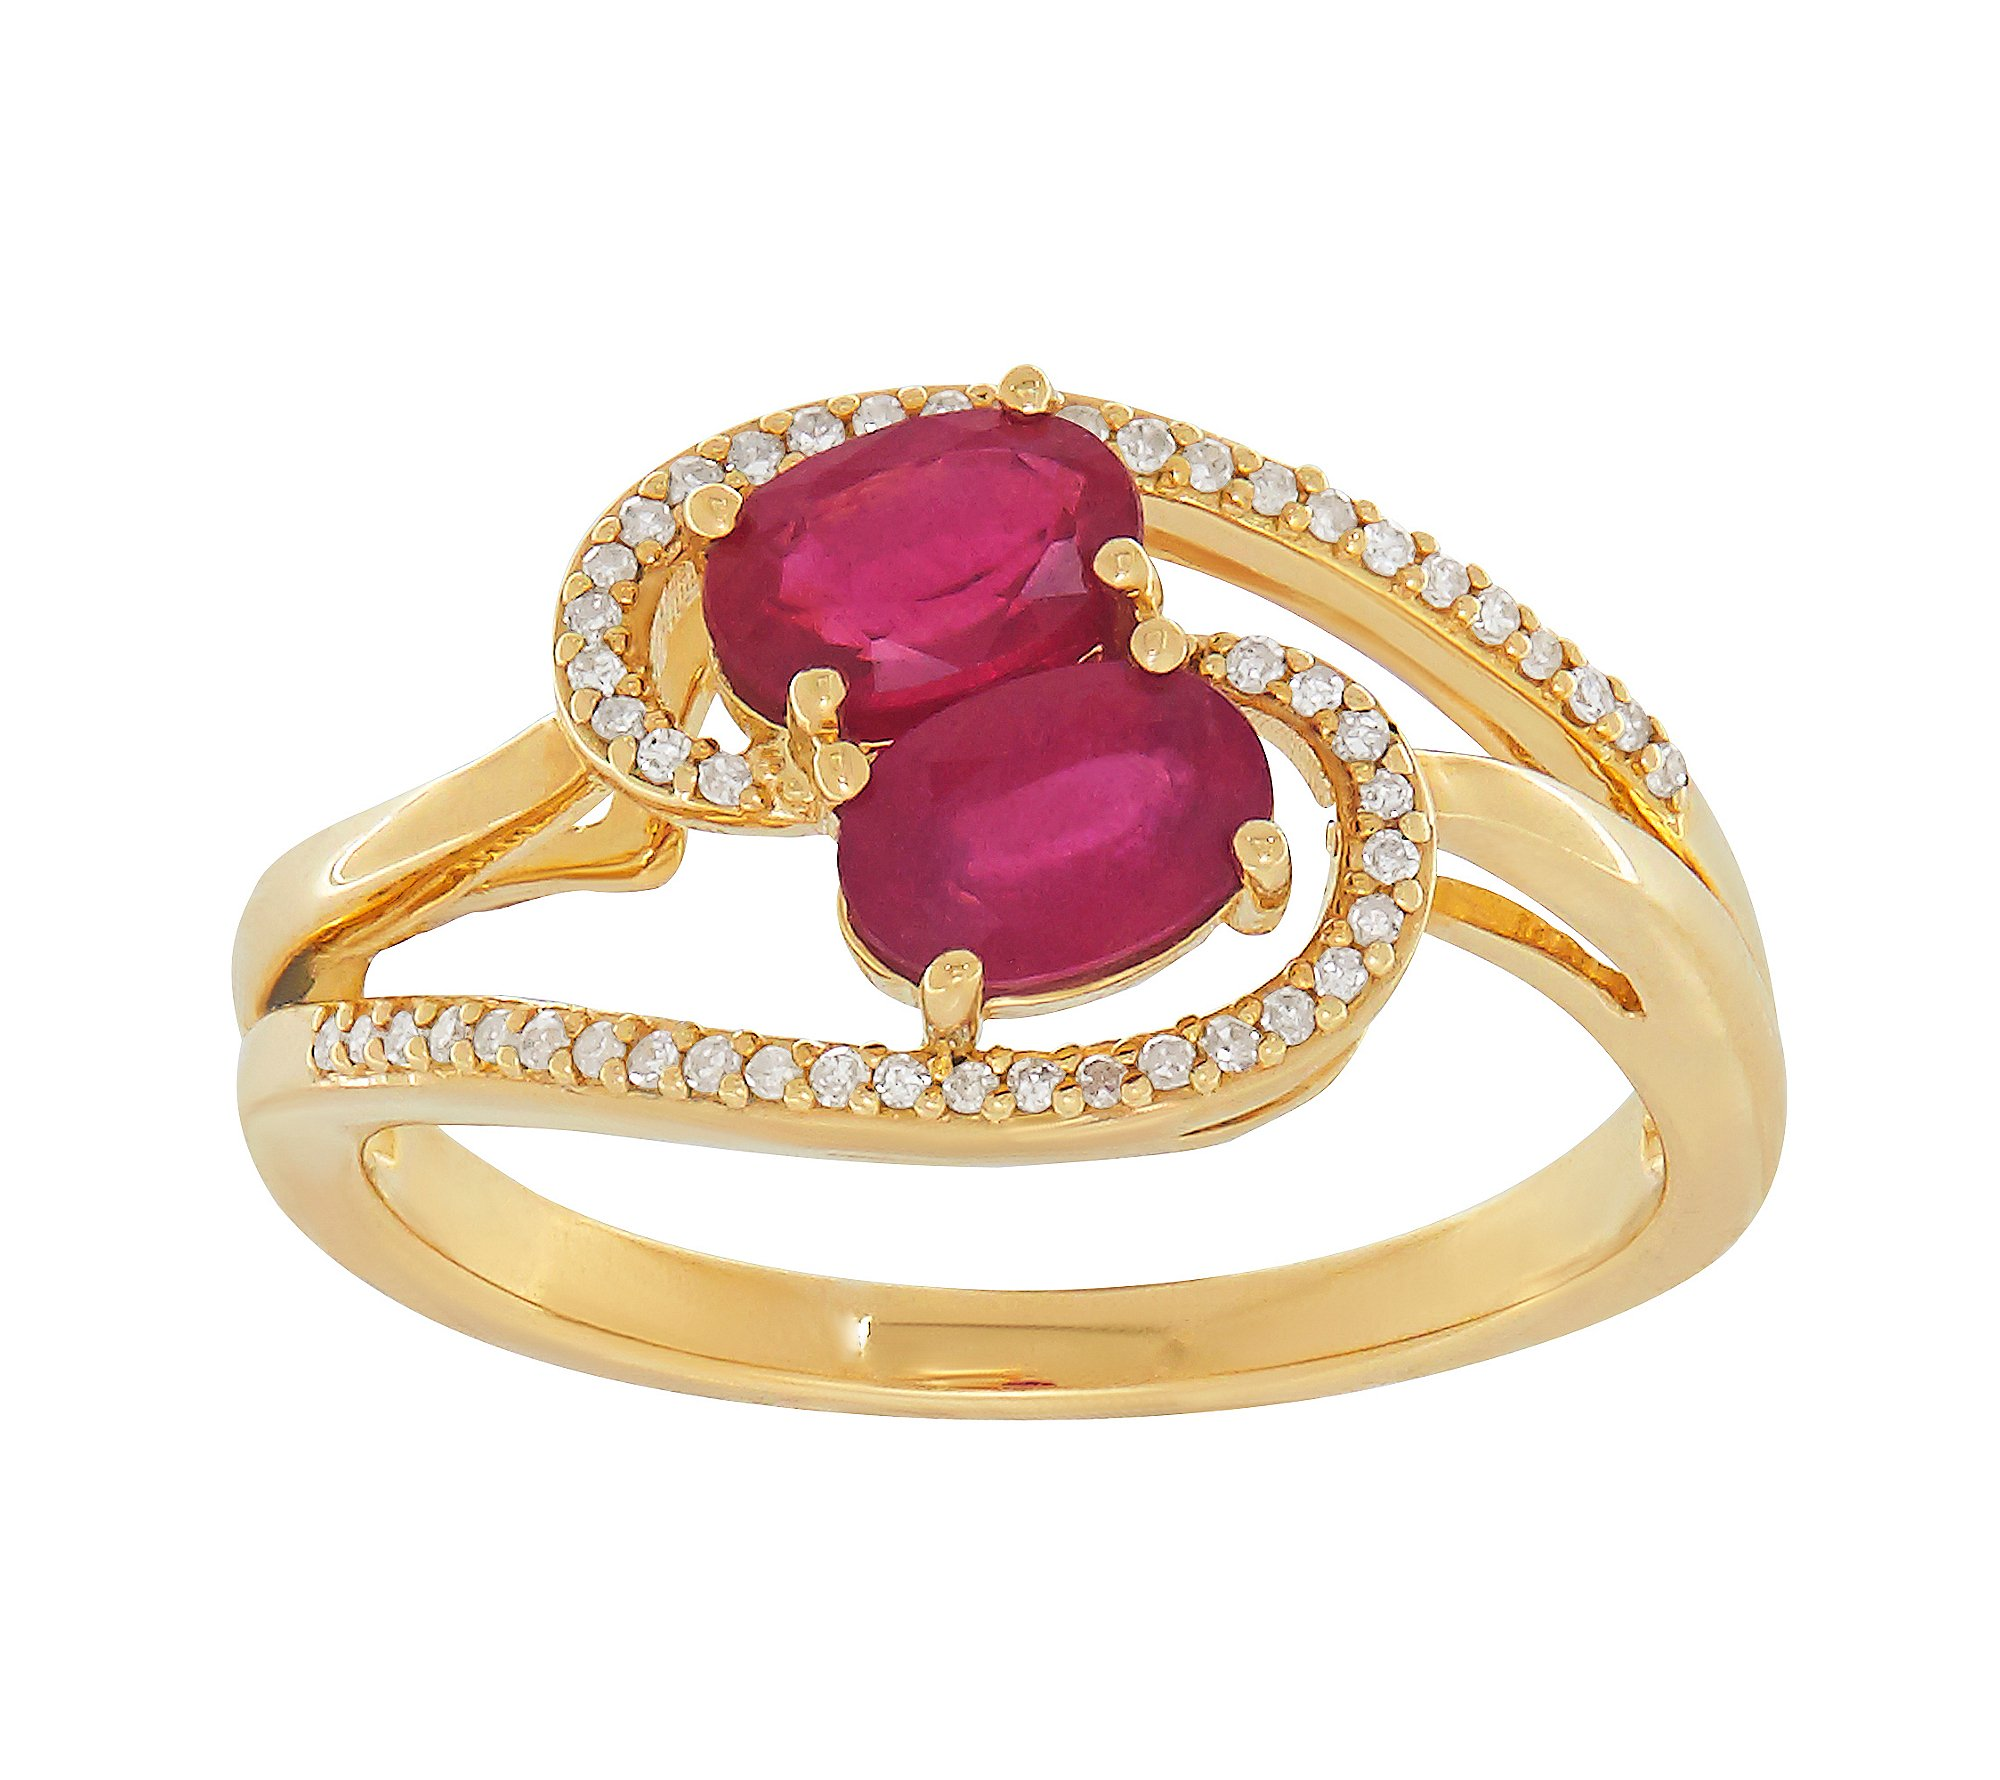 10K Yellow Gold and Glass Filled Ruby Ring with Diamond Accents by Fine Jewelry